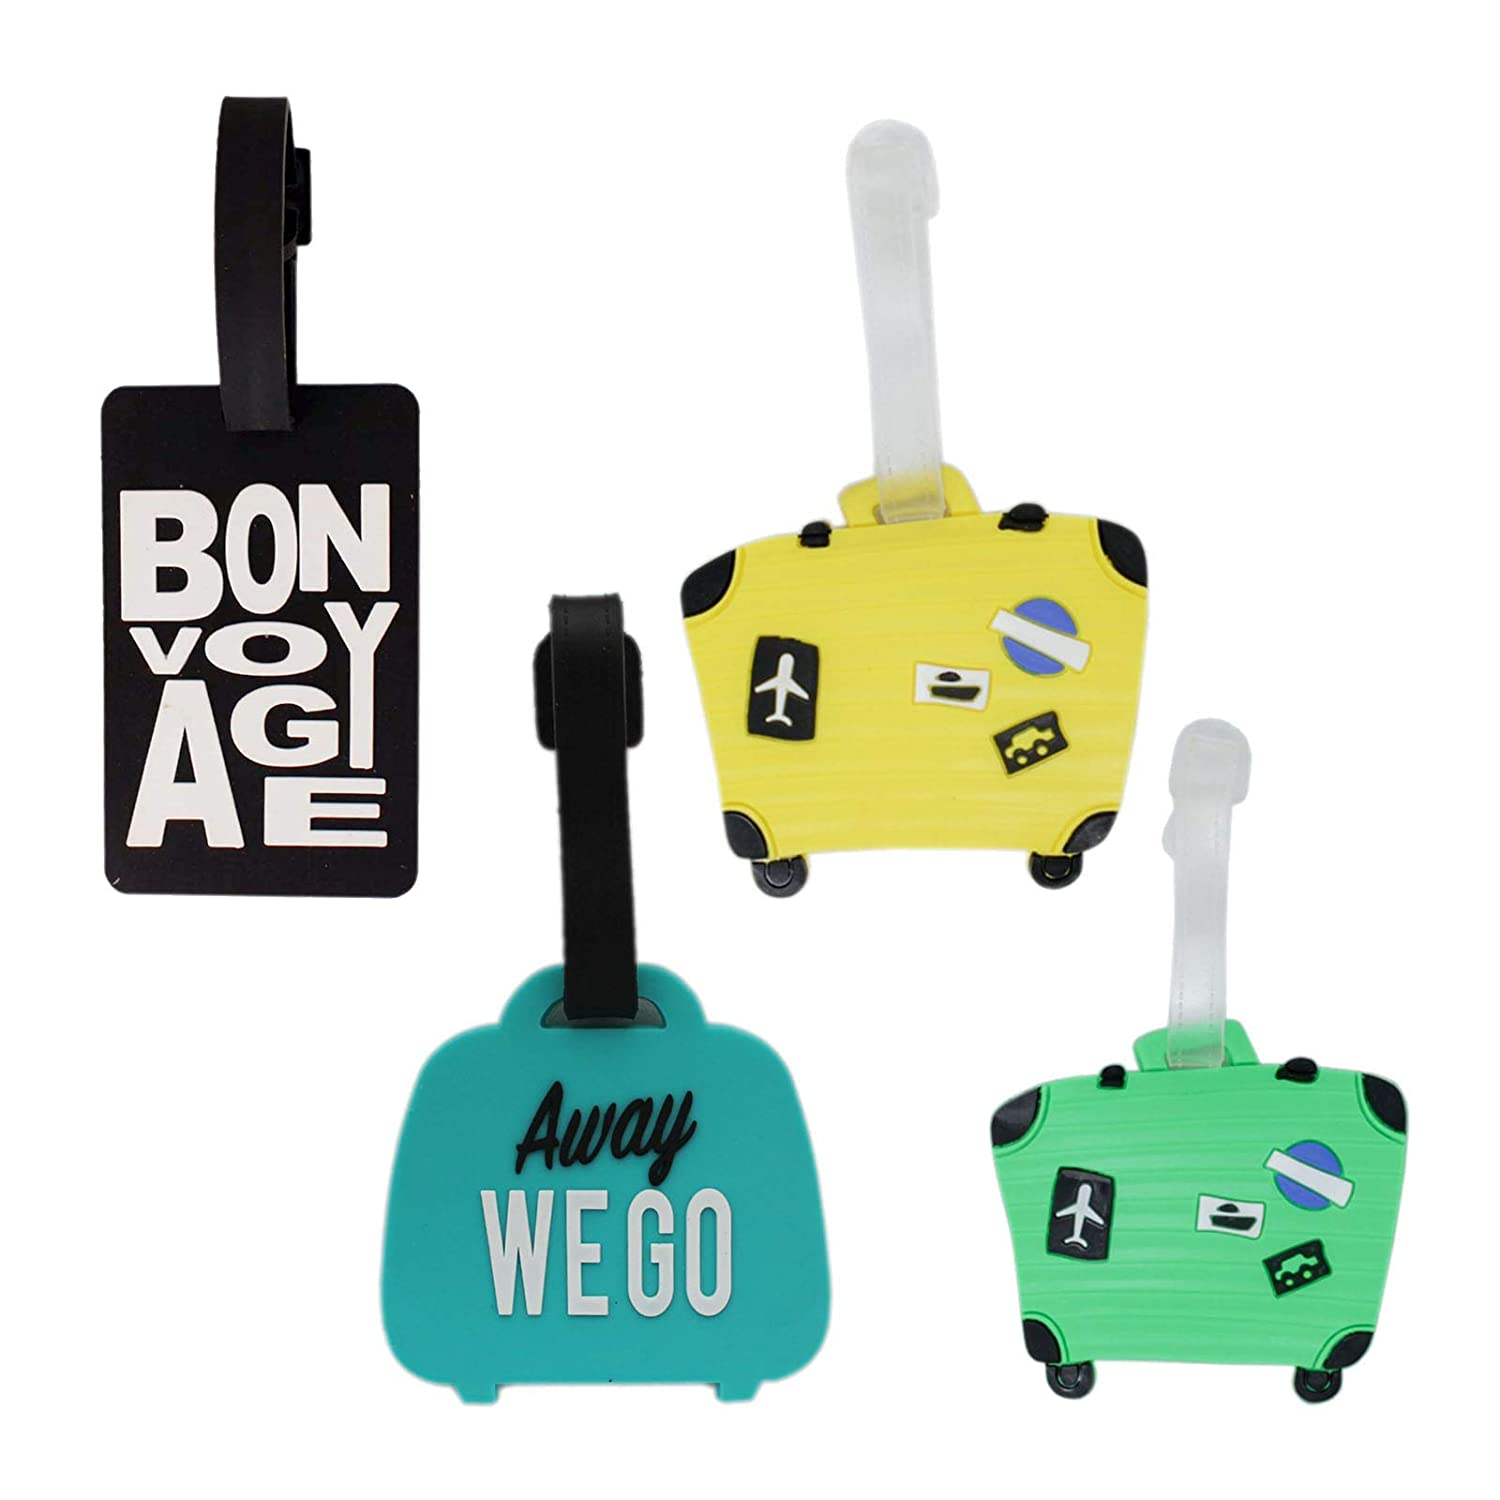 2 Pack Luggage Tags Guitars Handbag Tag For Travel Bag Suitcase Accessories